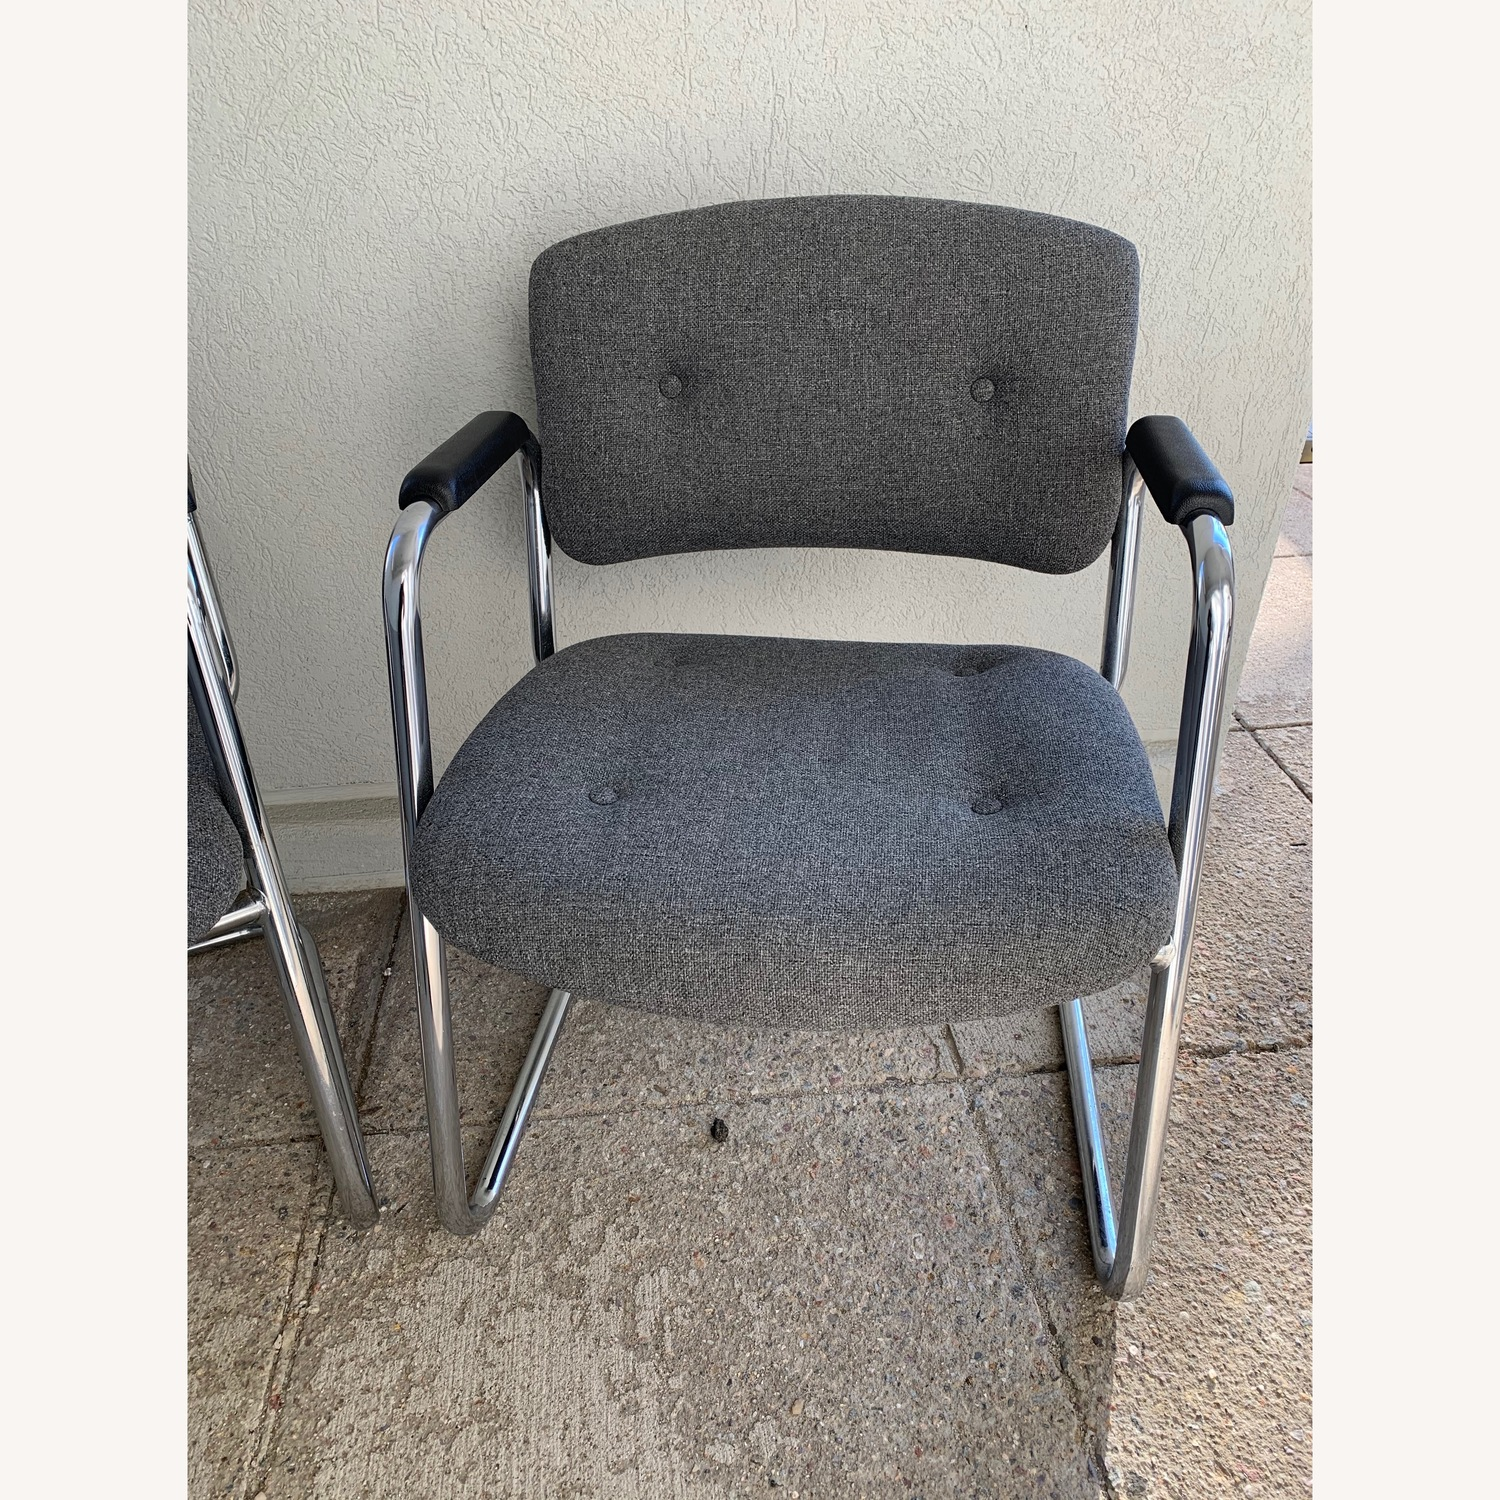 United Chair Company Cantilever Chairs - image-4